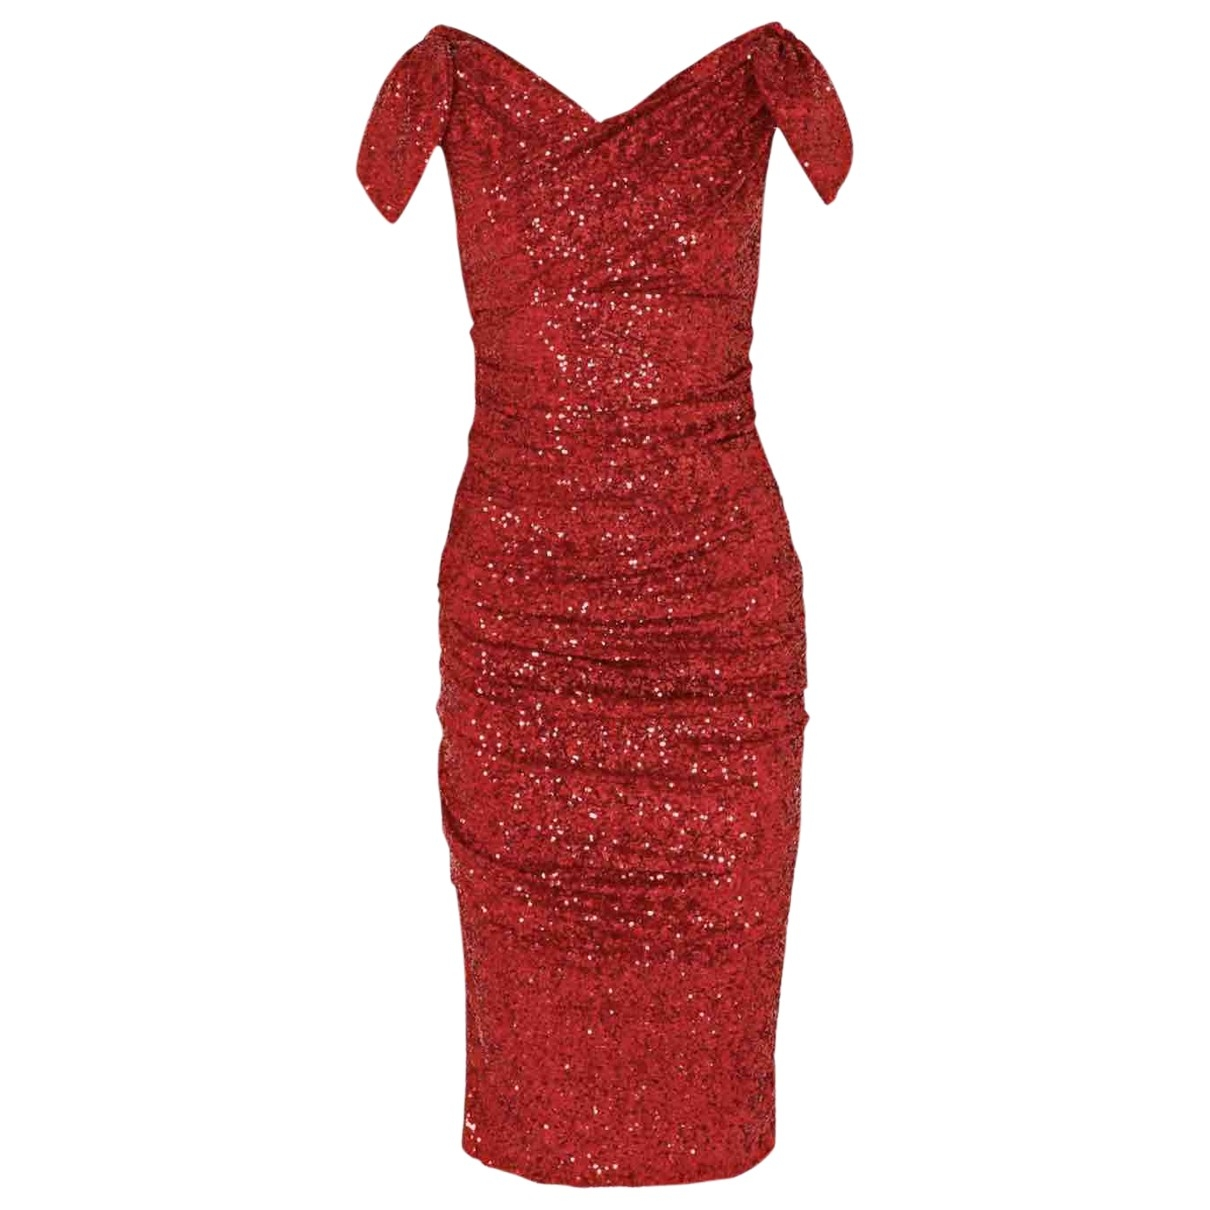 Dolce & Gabbana \N Red Glitter dress for Women 42 IT